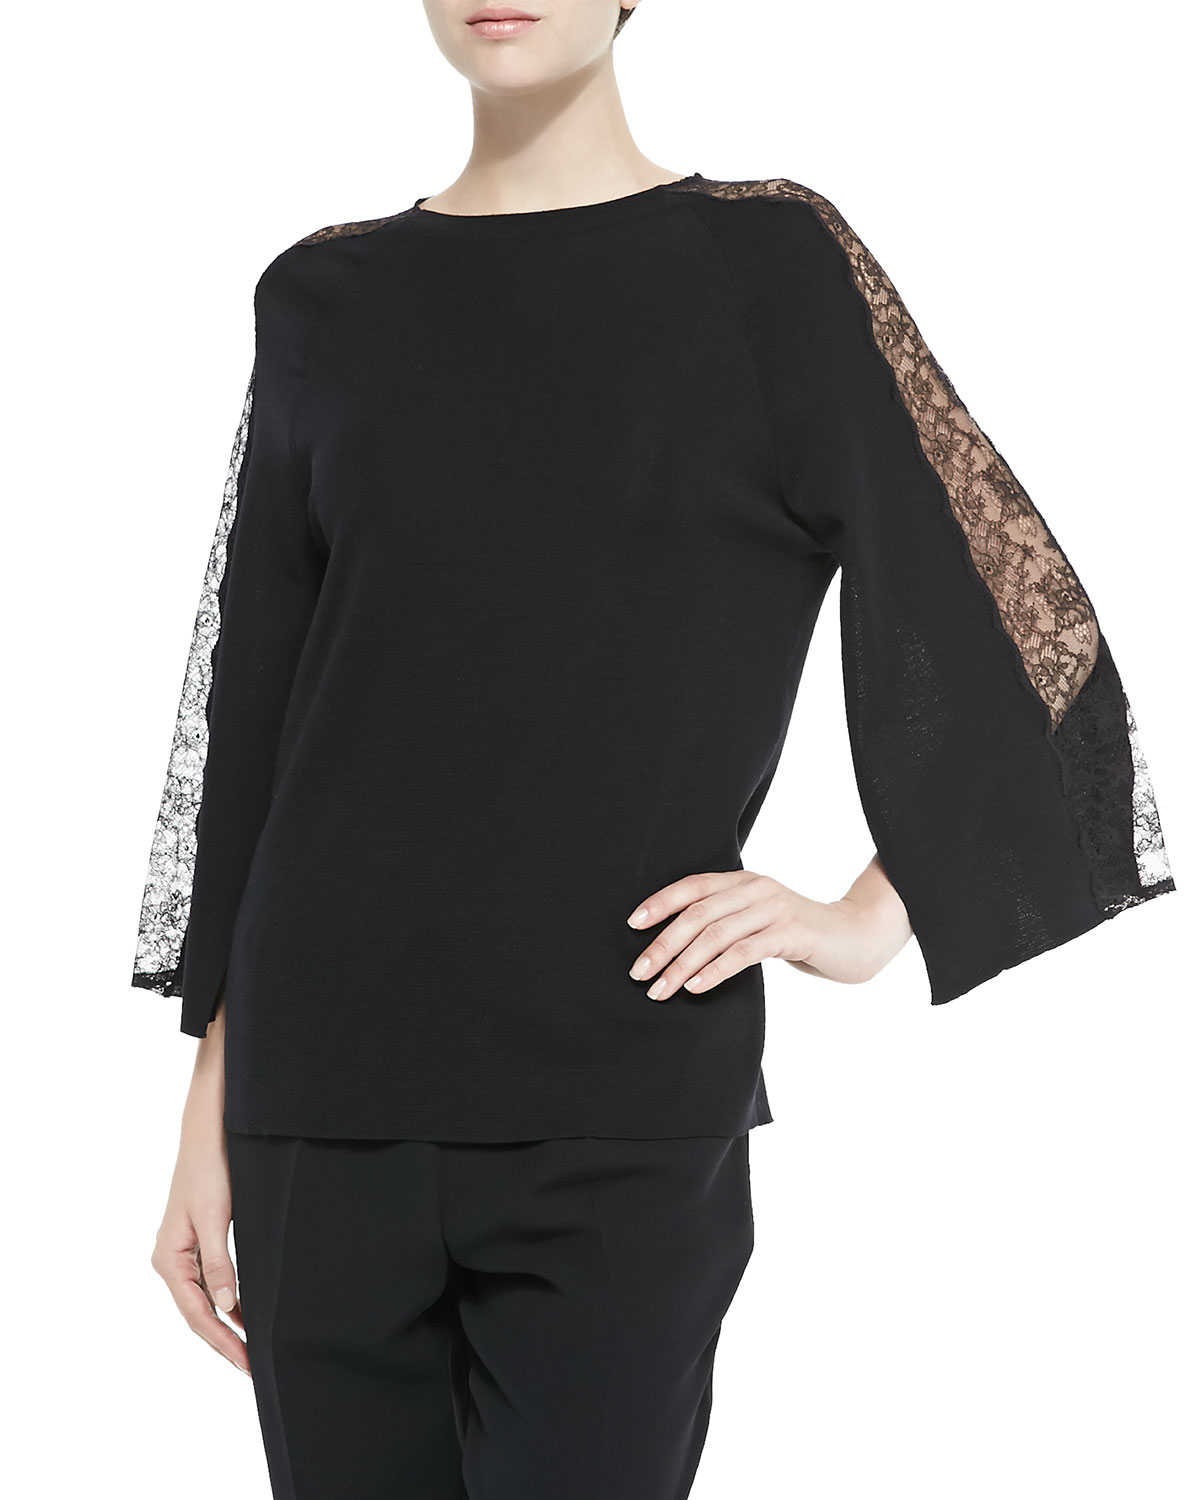 TUNIC WITH CHANTILLY LACE PA